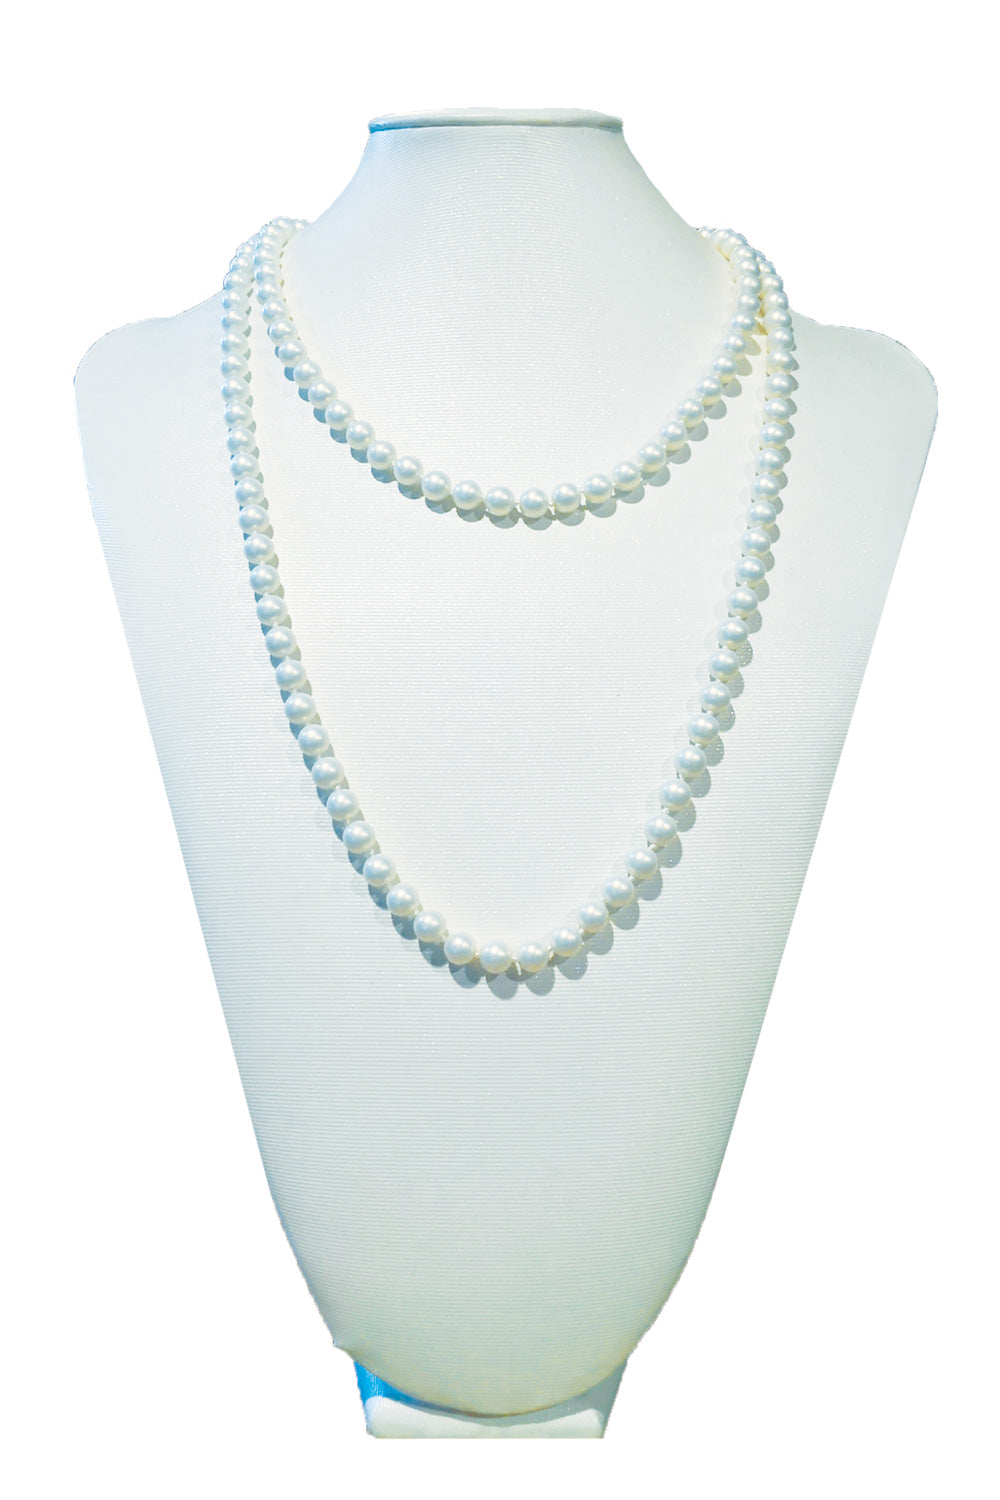 White Matte Costume Pearl Necklace | Annah Stretton | Designer Accessories